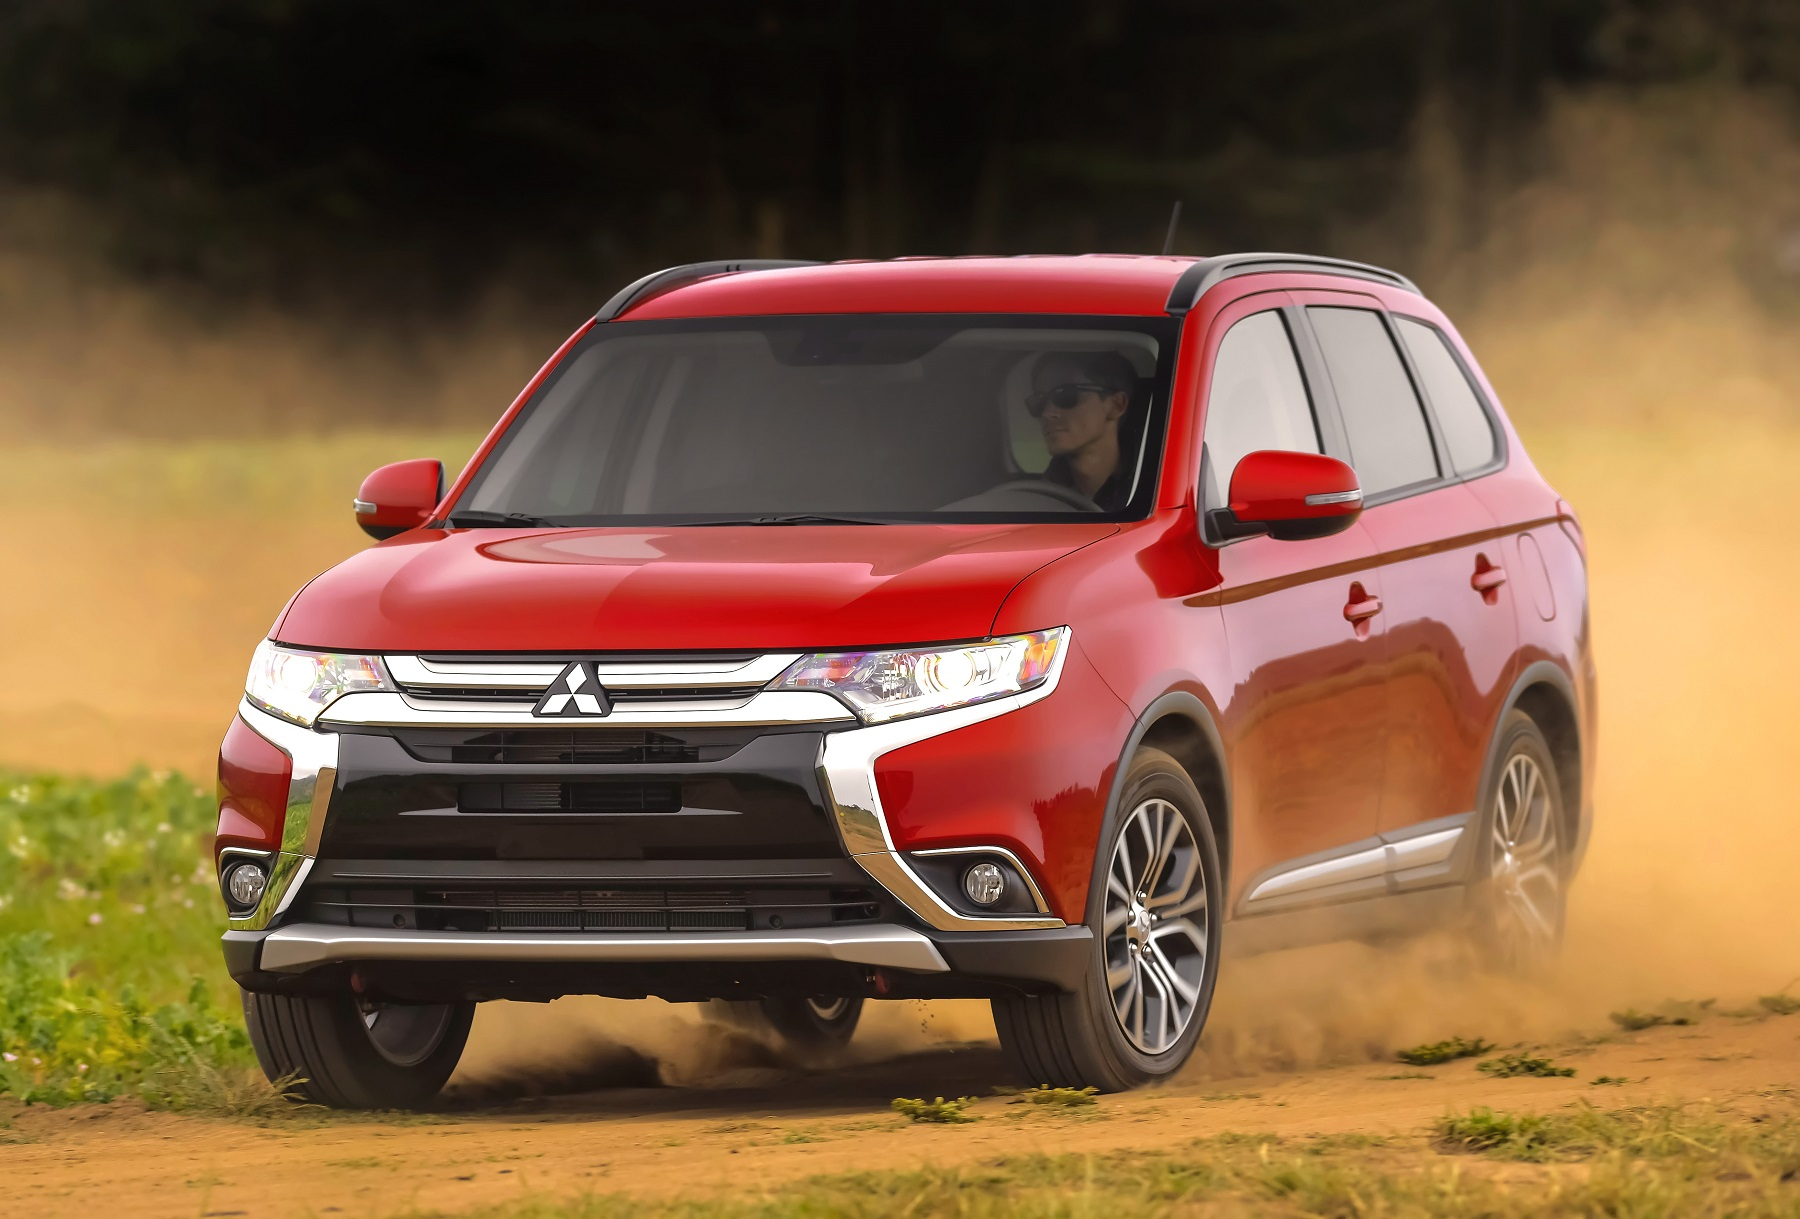 Manufacturer photo: The 2016 Mitsubishi Outlander is redesigned and reengineered to stand out in the competitive small crossover segment with its powerful and dynamic appearance and refined driving experience